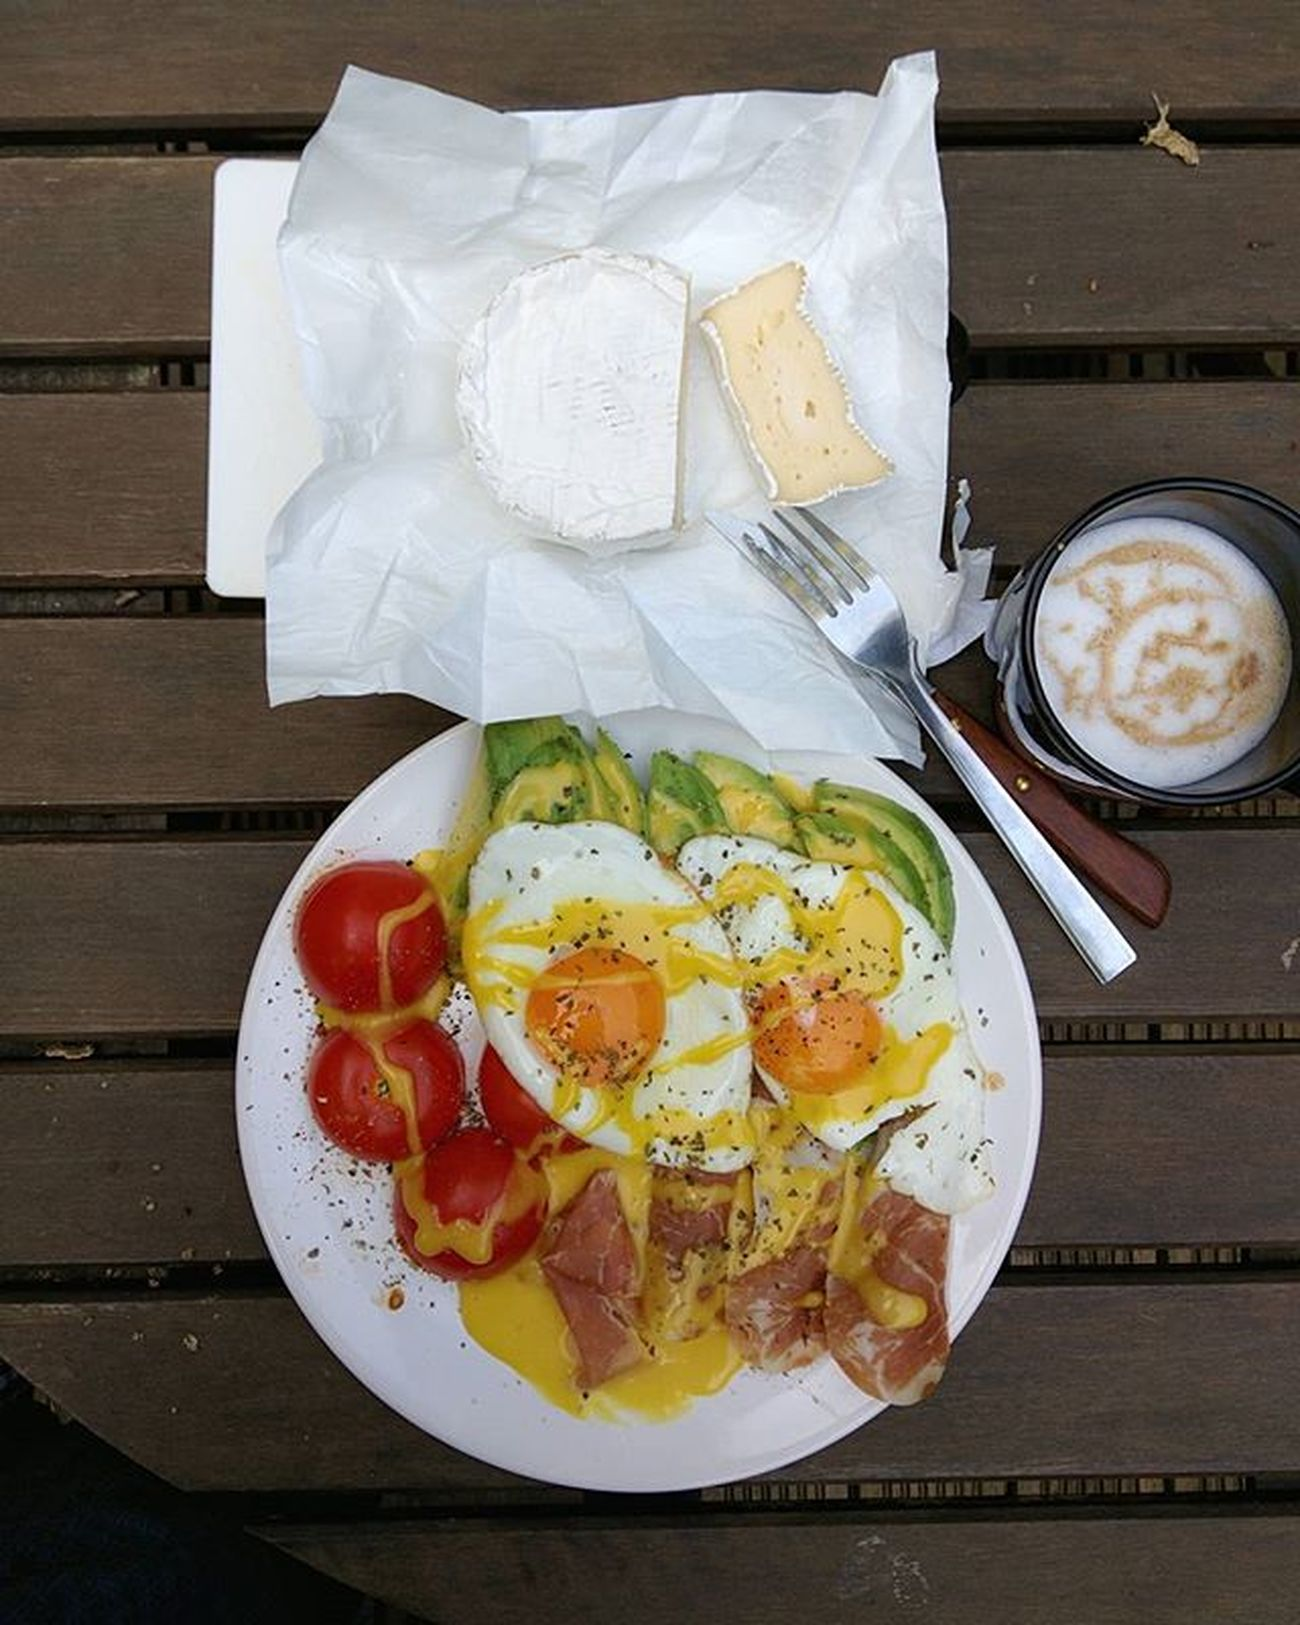 Perfect breakfast after a Saturday night out, right outside in my garden. Enjoying the last sunny mornings in London while I can! - Homemade latte - Brie cheese from the lake district - Homemade mayonnaise - Prosciutto di Parma - Avocado - Eggs - Grilled organic tomatoes - Seasoned with oregano and black pepper Breakfast Outside Green Delicious Organic Organicfood Eggs Tomatos Homemade Homemadefood Yummy Avocado Grilledtomato Prosciutto Healthy Food Foodorgasm Fitfood Goodfood Fuel Protain Avolove Homemadelatte Cheese Brie morning london foodgasm